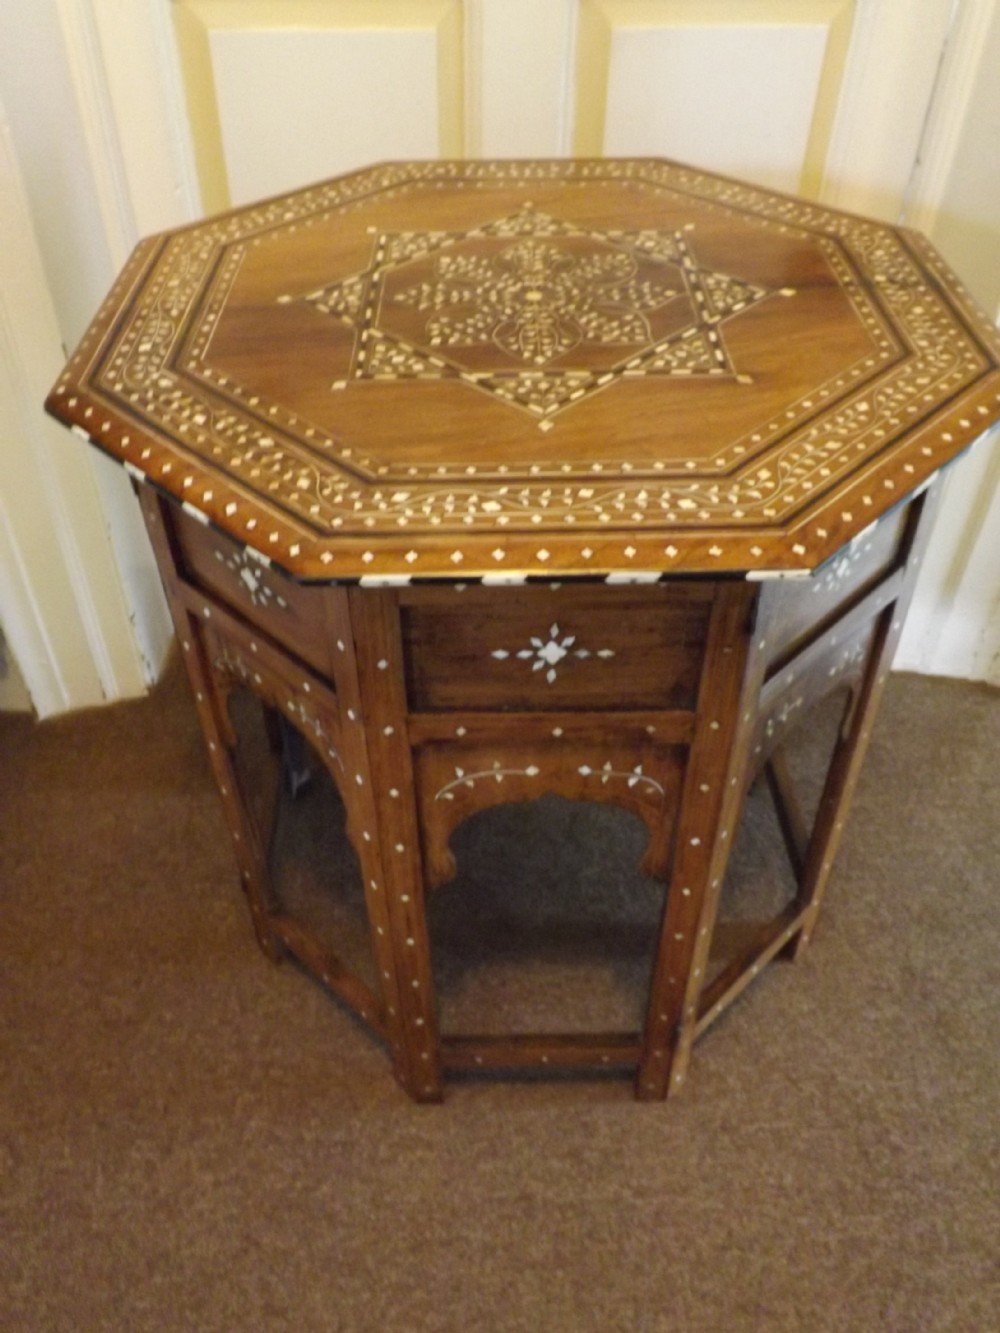 c19th indian ivoryinlaid 'shisham' indian rosewood octagonal occasional table